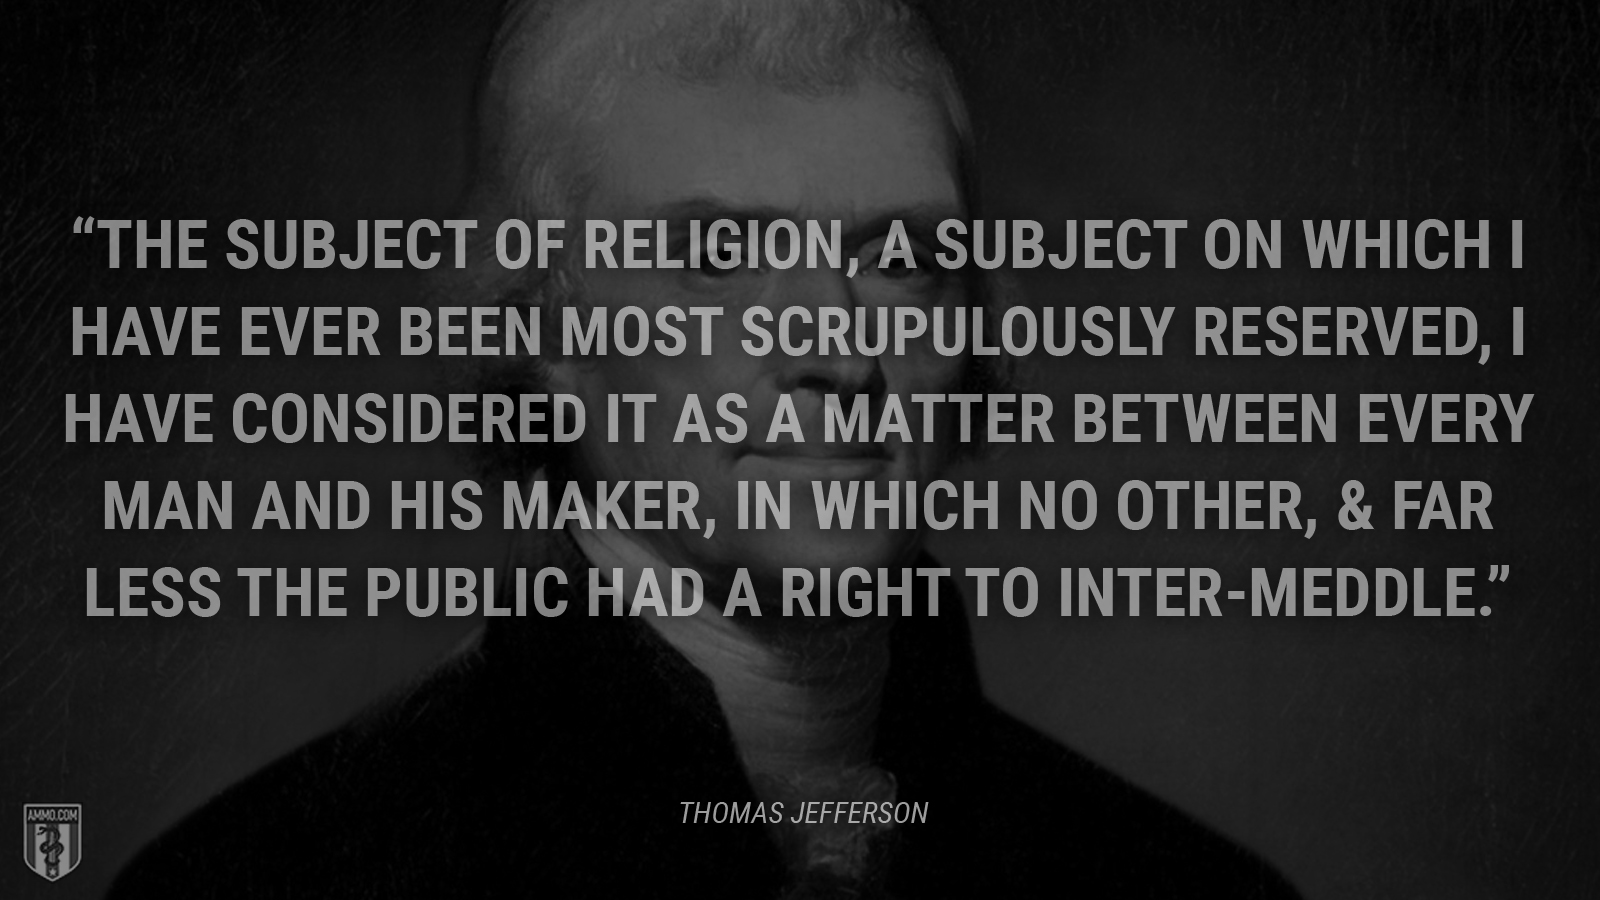 """The subject of religion, a subject on which I have ever been most scrupulously reserved, I have considered it as a matter between every man and his maker, in which no other, & far less the public had a right to inter-meddle."" - Thomas Jefferson"